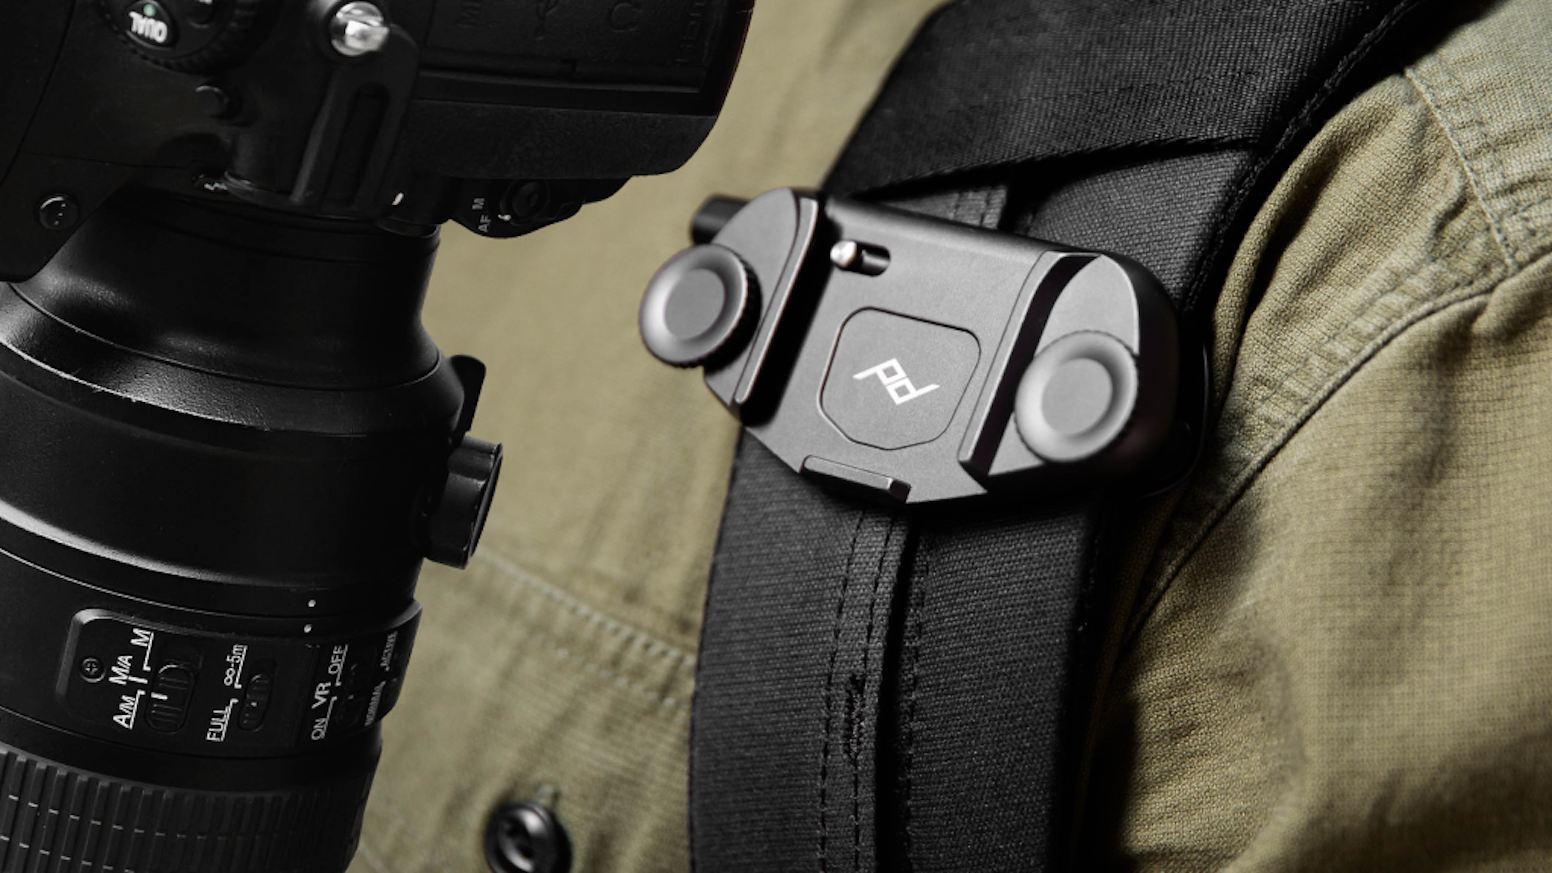 Camera carry gear that is versatile, stable, durable, and beautiful. Iconic tools with a new level of performance and aesthetics.